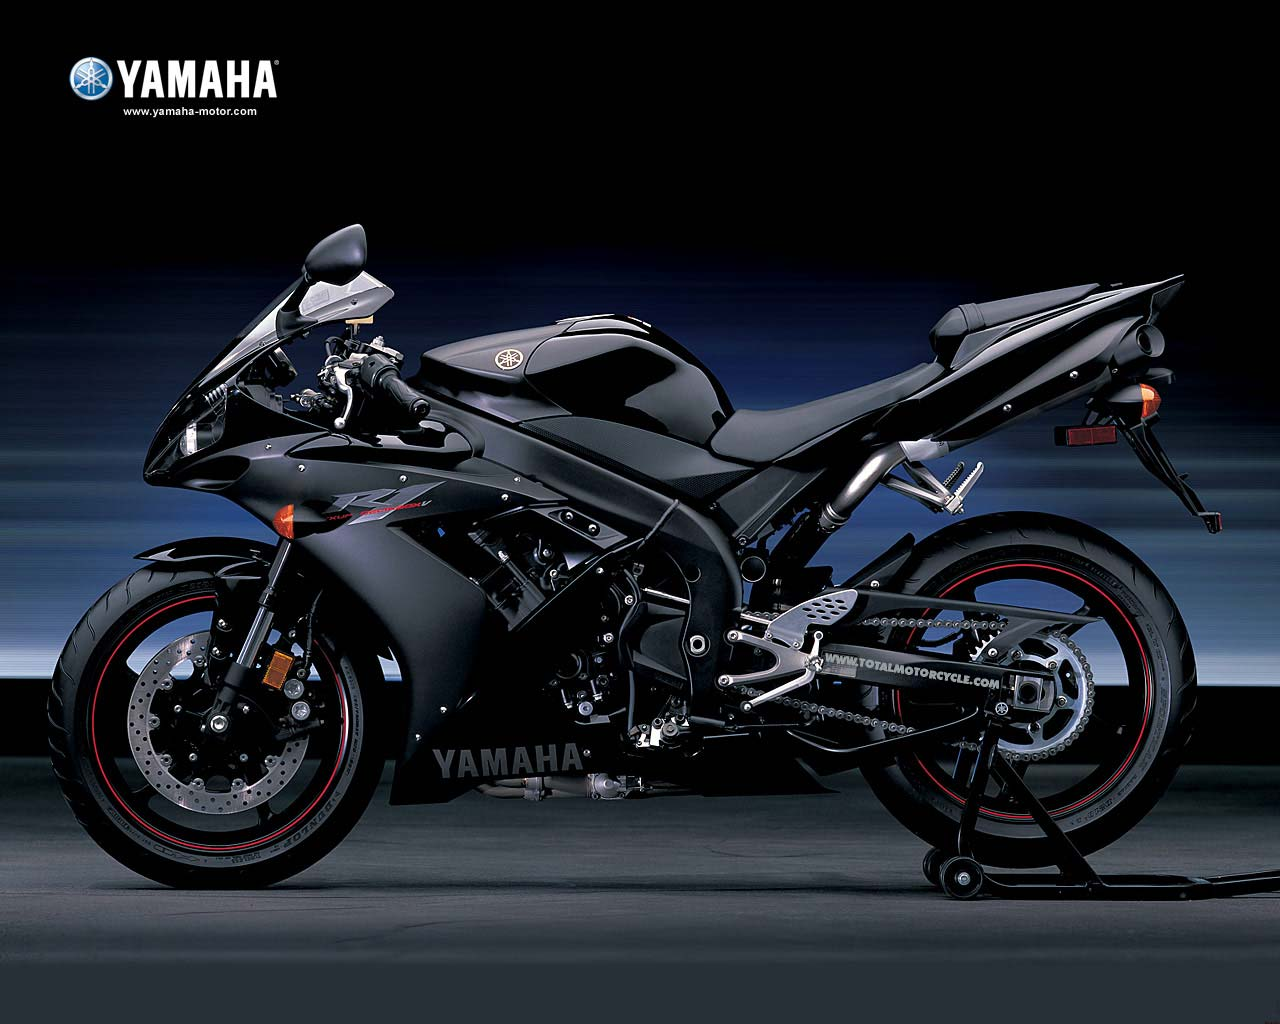 Yamaha R1 Motorcycle is one of